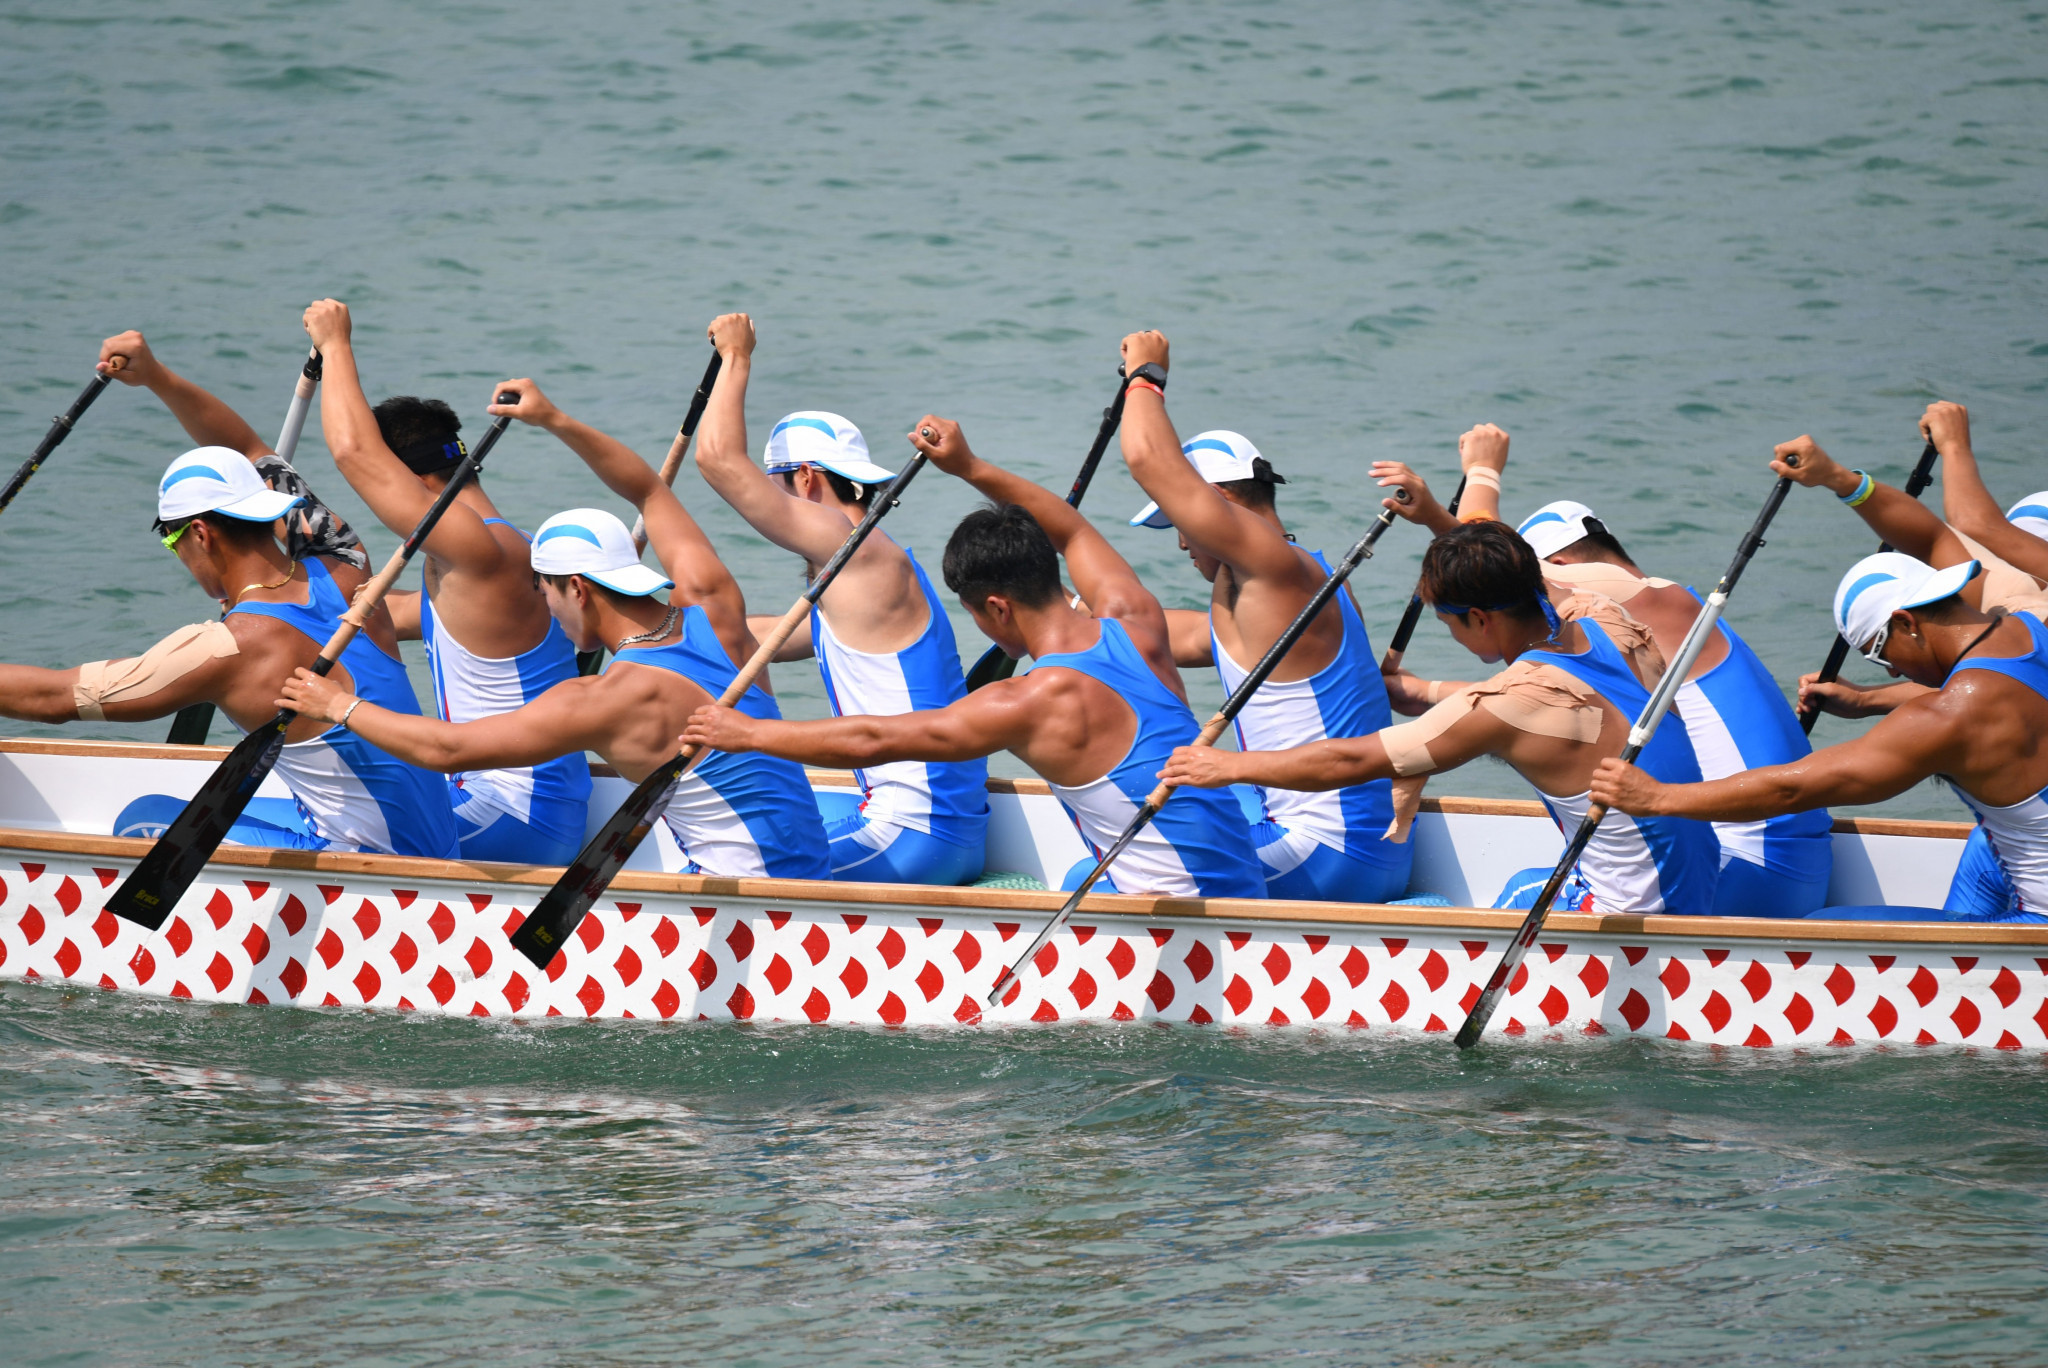 The unified Korean team increased their medal tally to three by taking bronze in the men's 1,000 metres dragon boat race ©Getty Images